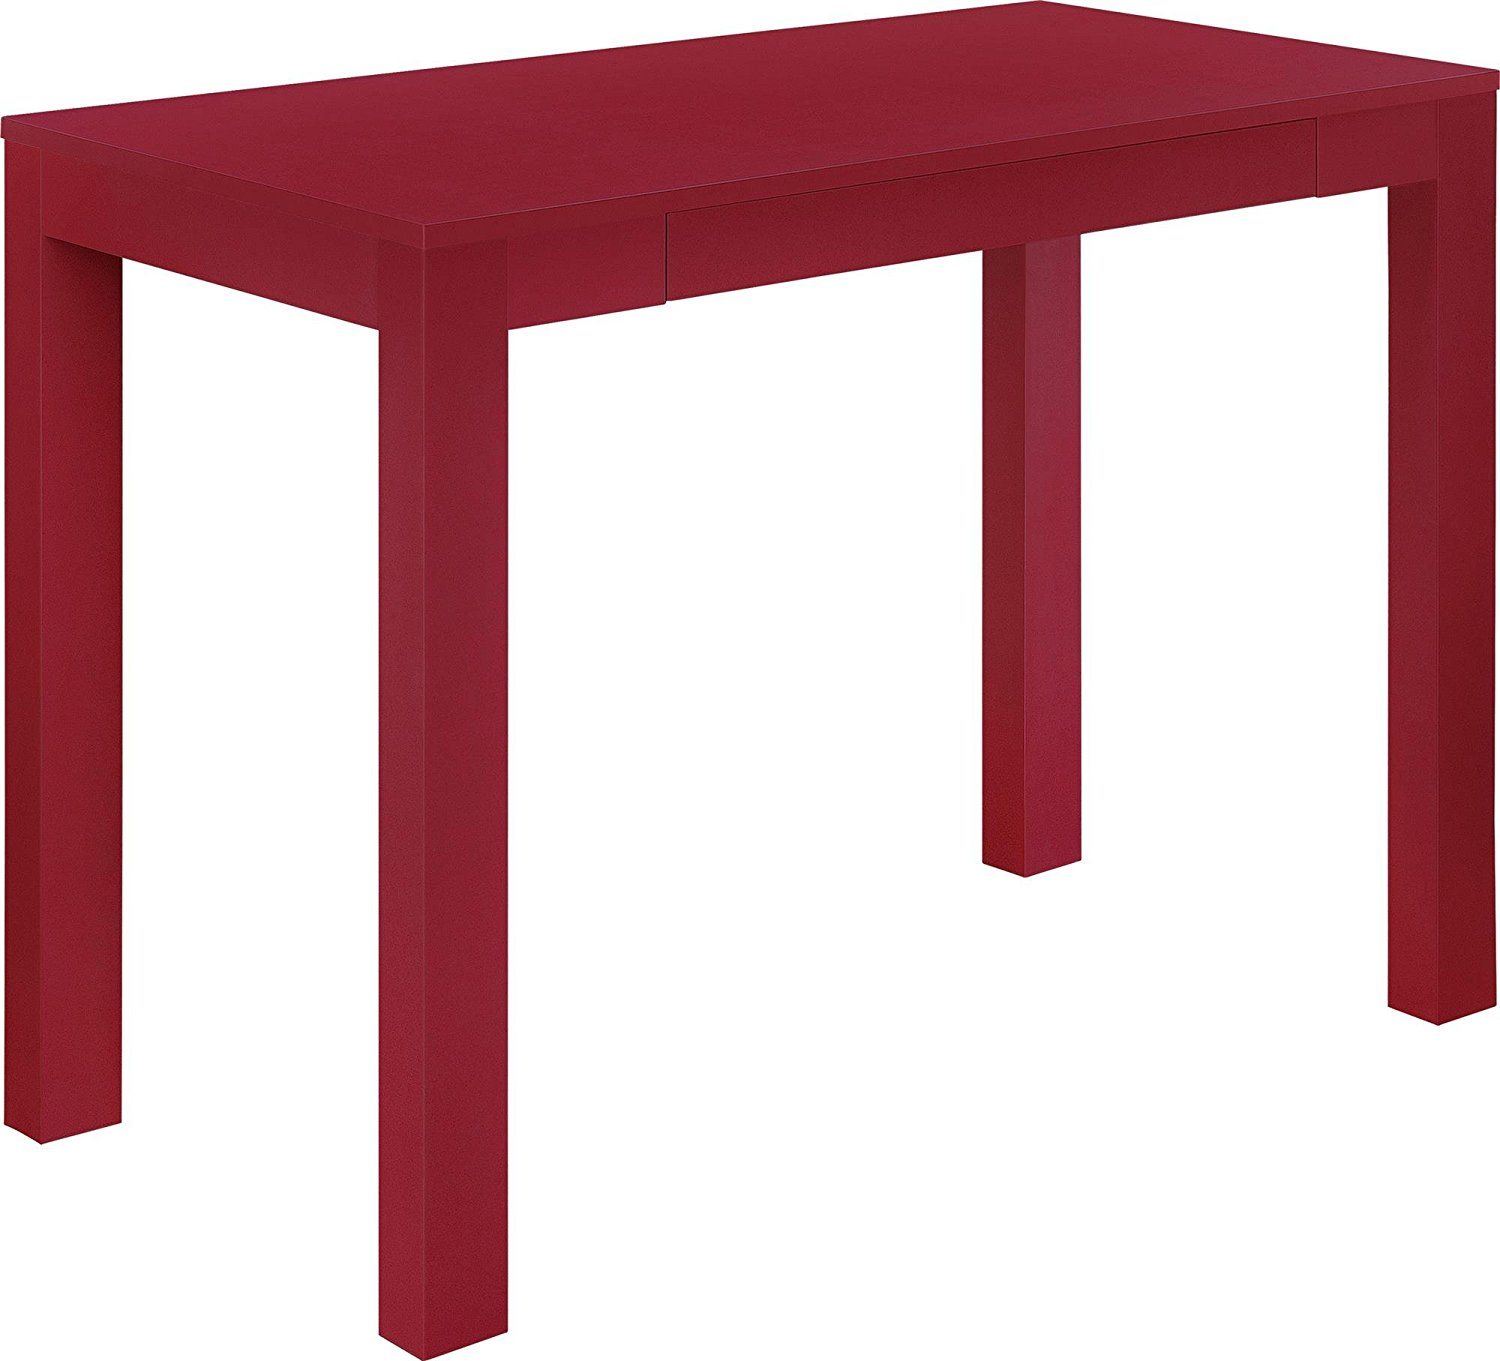 Altra Delilah Parsons Desk with Drawer, Red